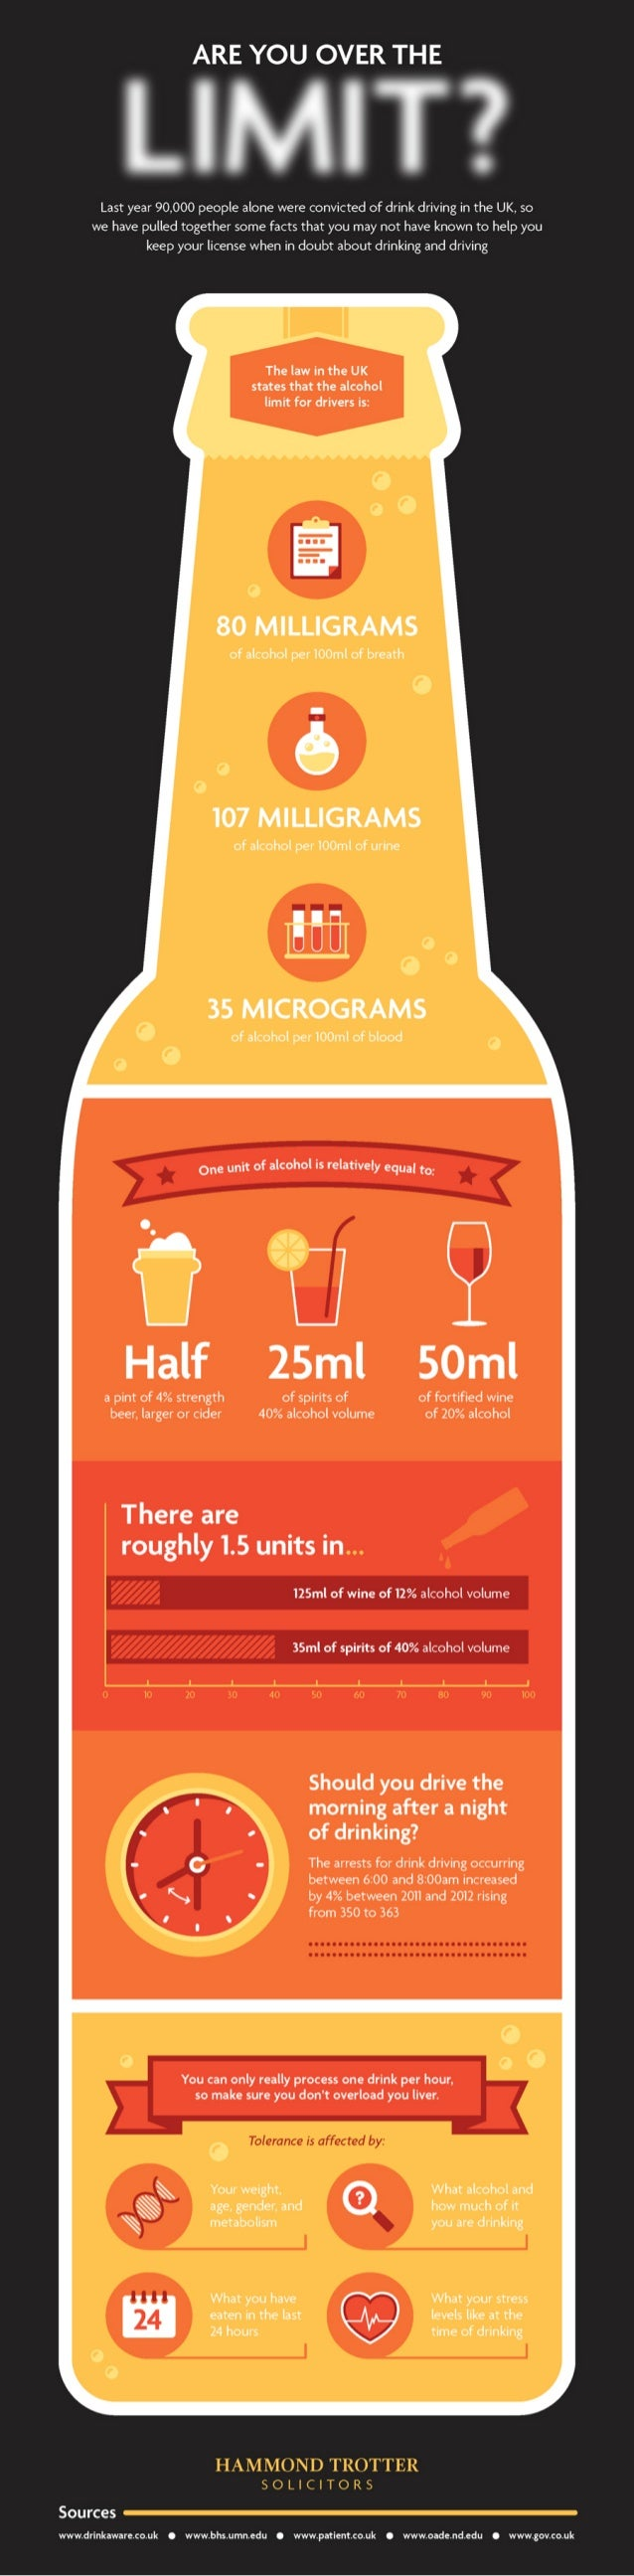 Are you over the limit? [Infographic]